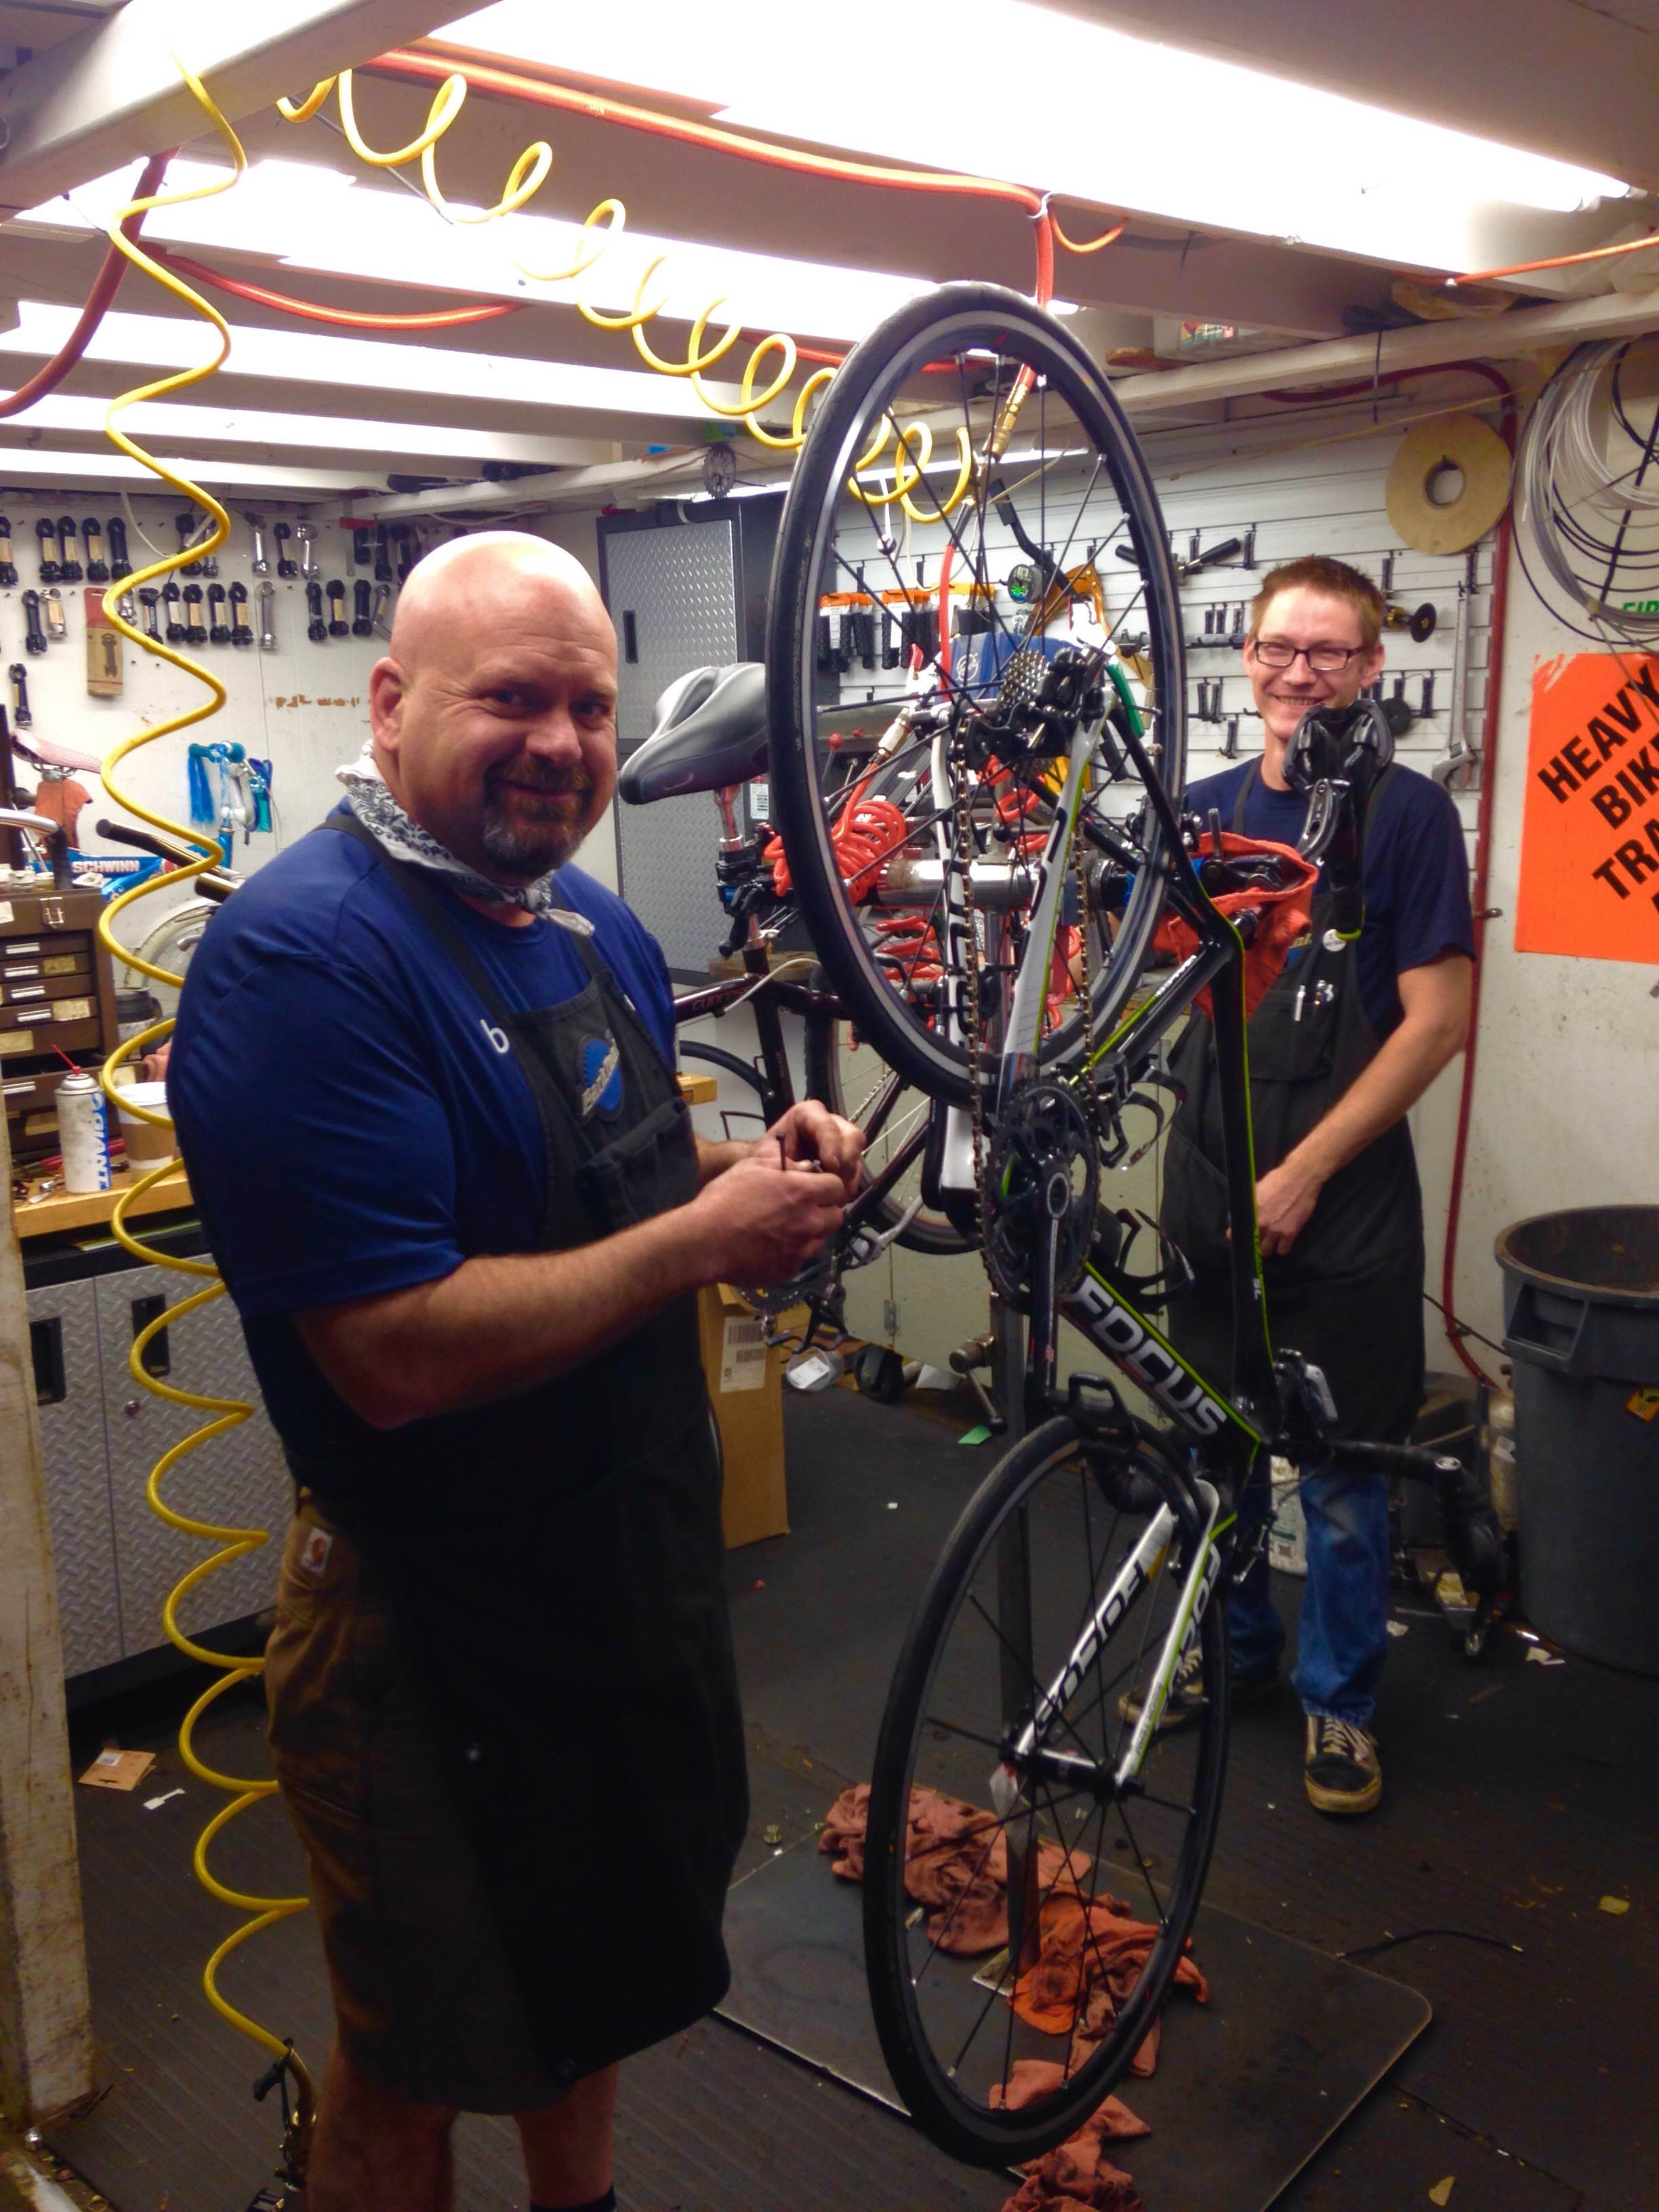 Bikes To You Grinnell Iowa the Grinnell Bikes To You